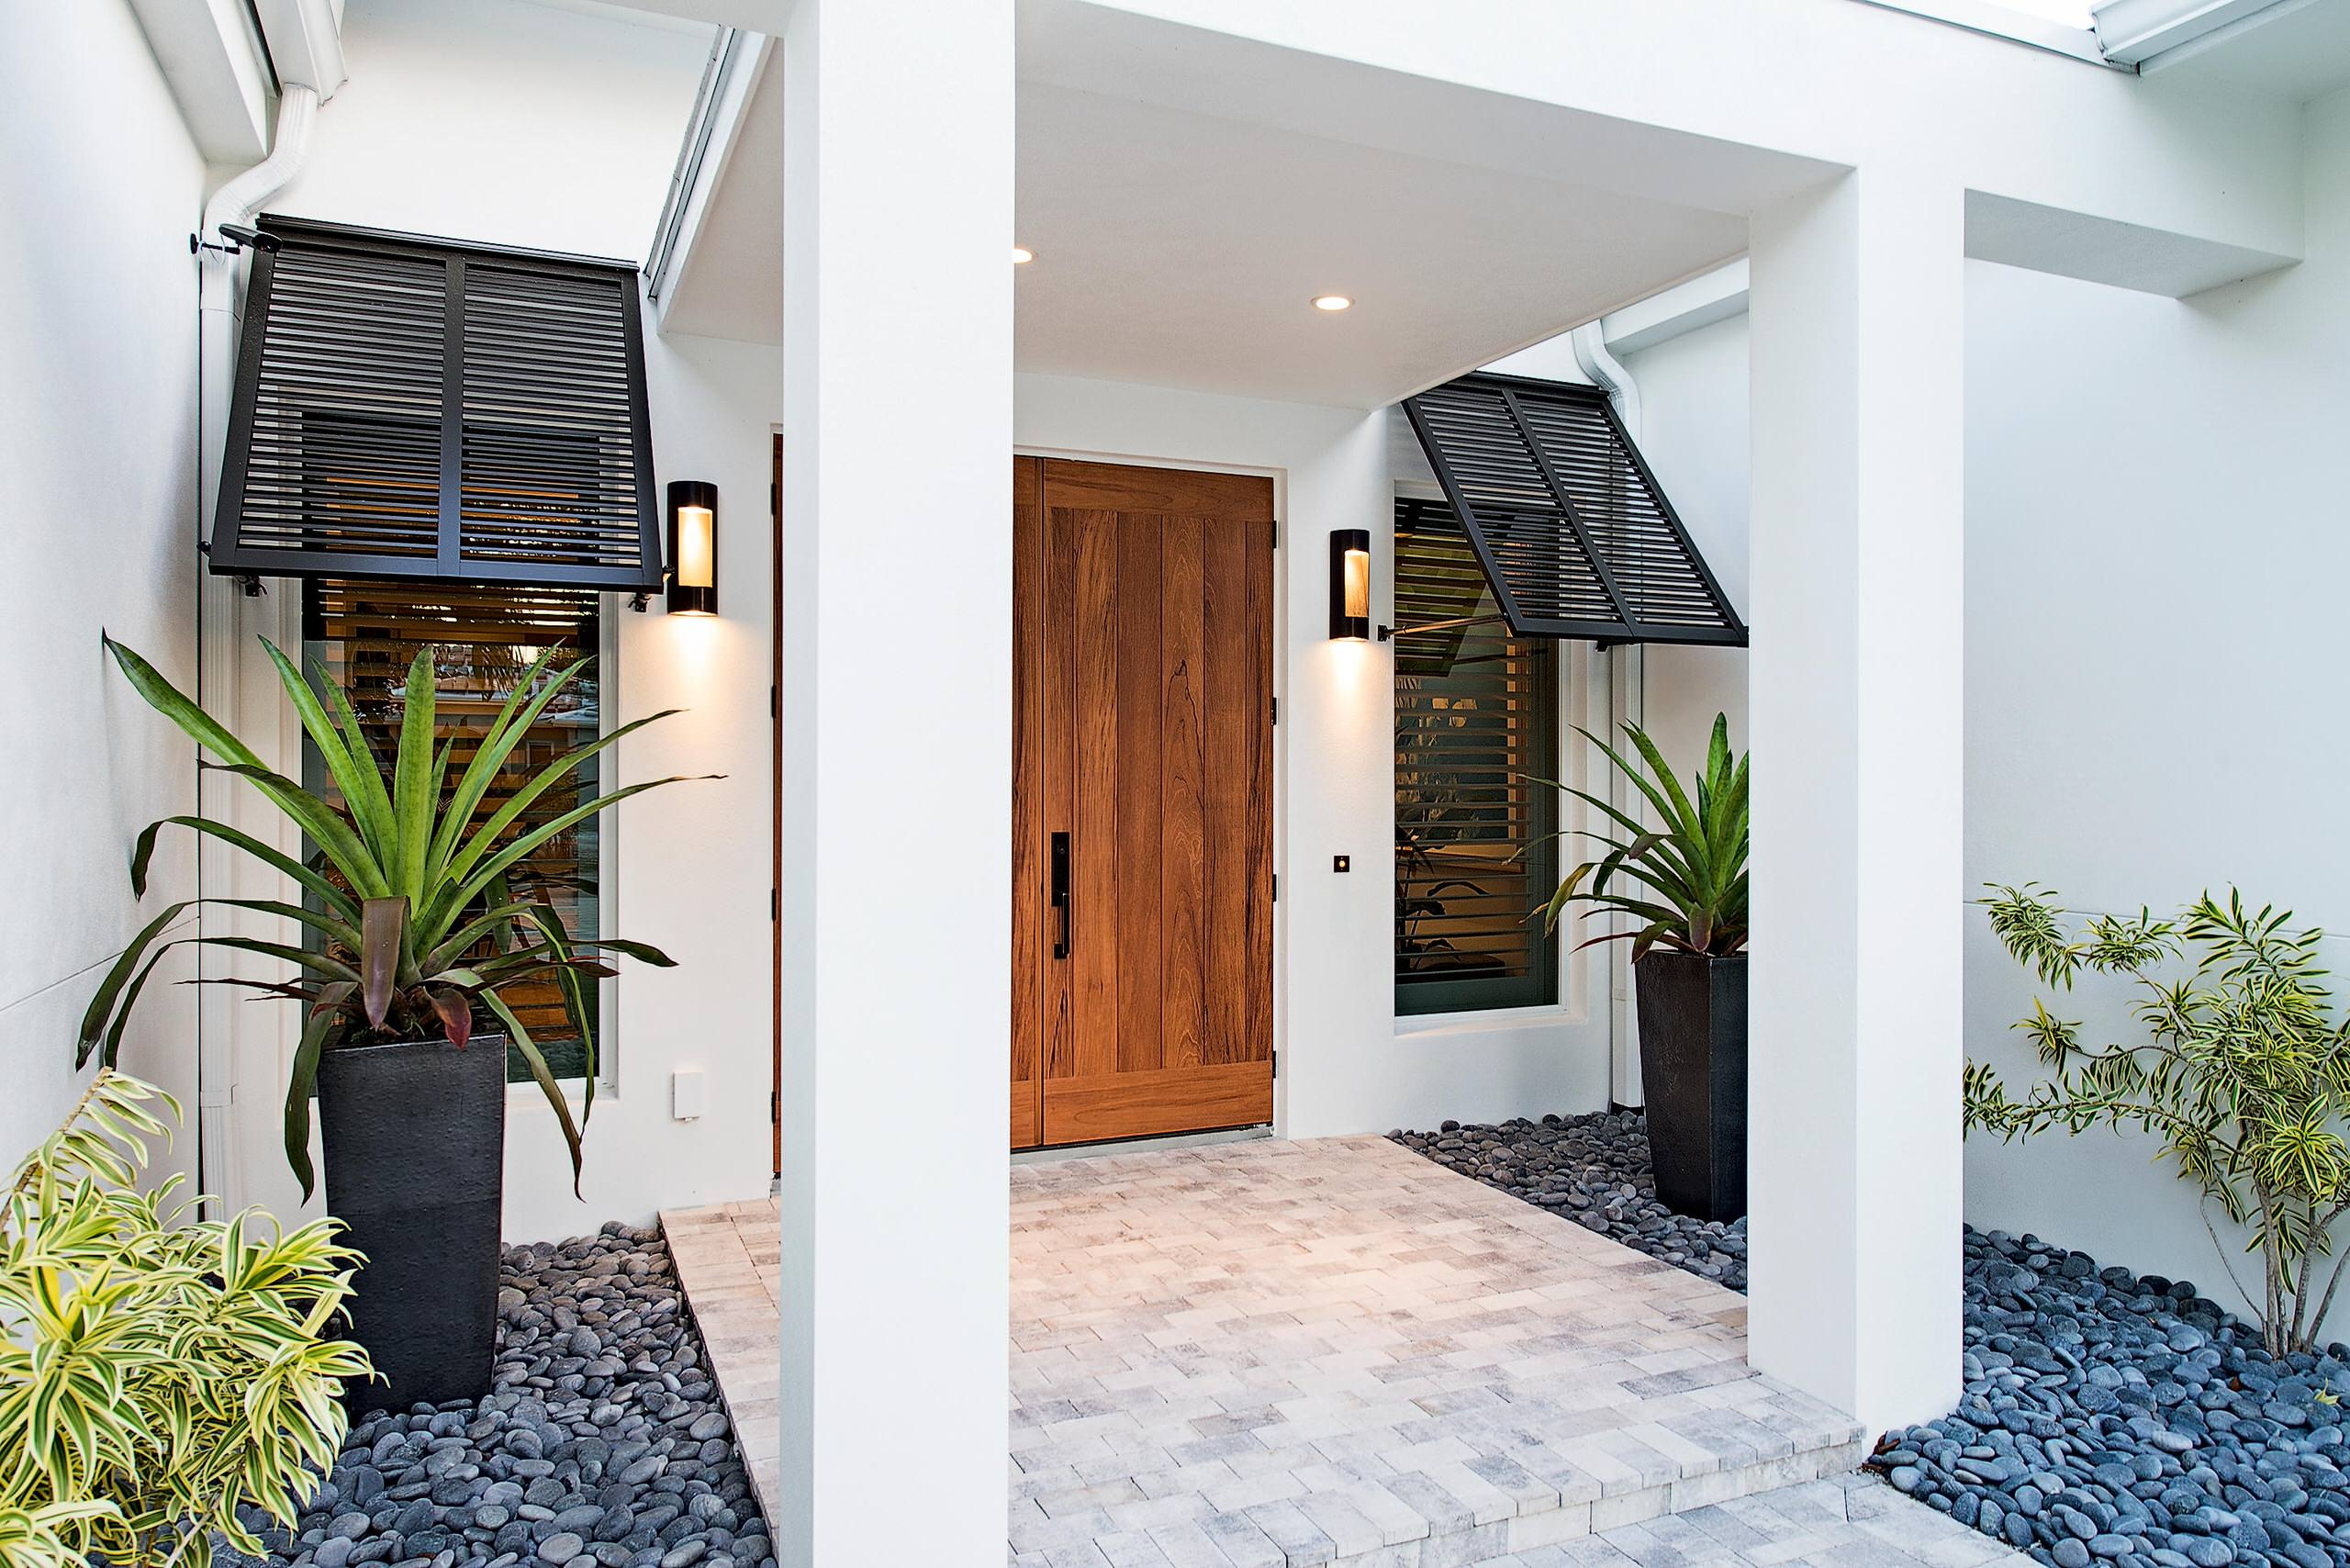 75 Beautiful Front Door Pictures Ideas February 2021 Houzz